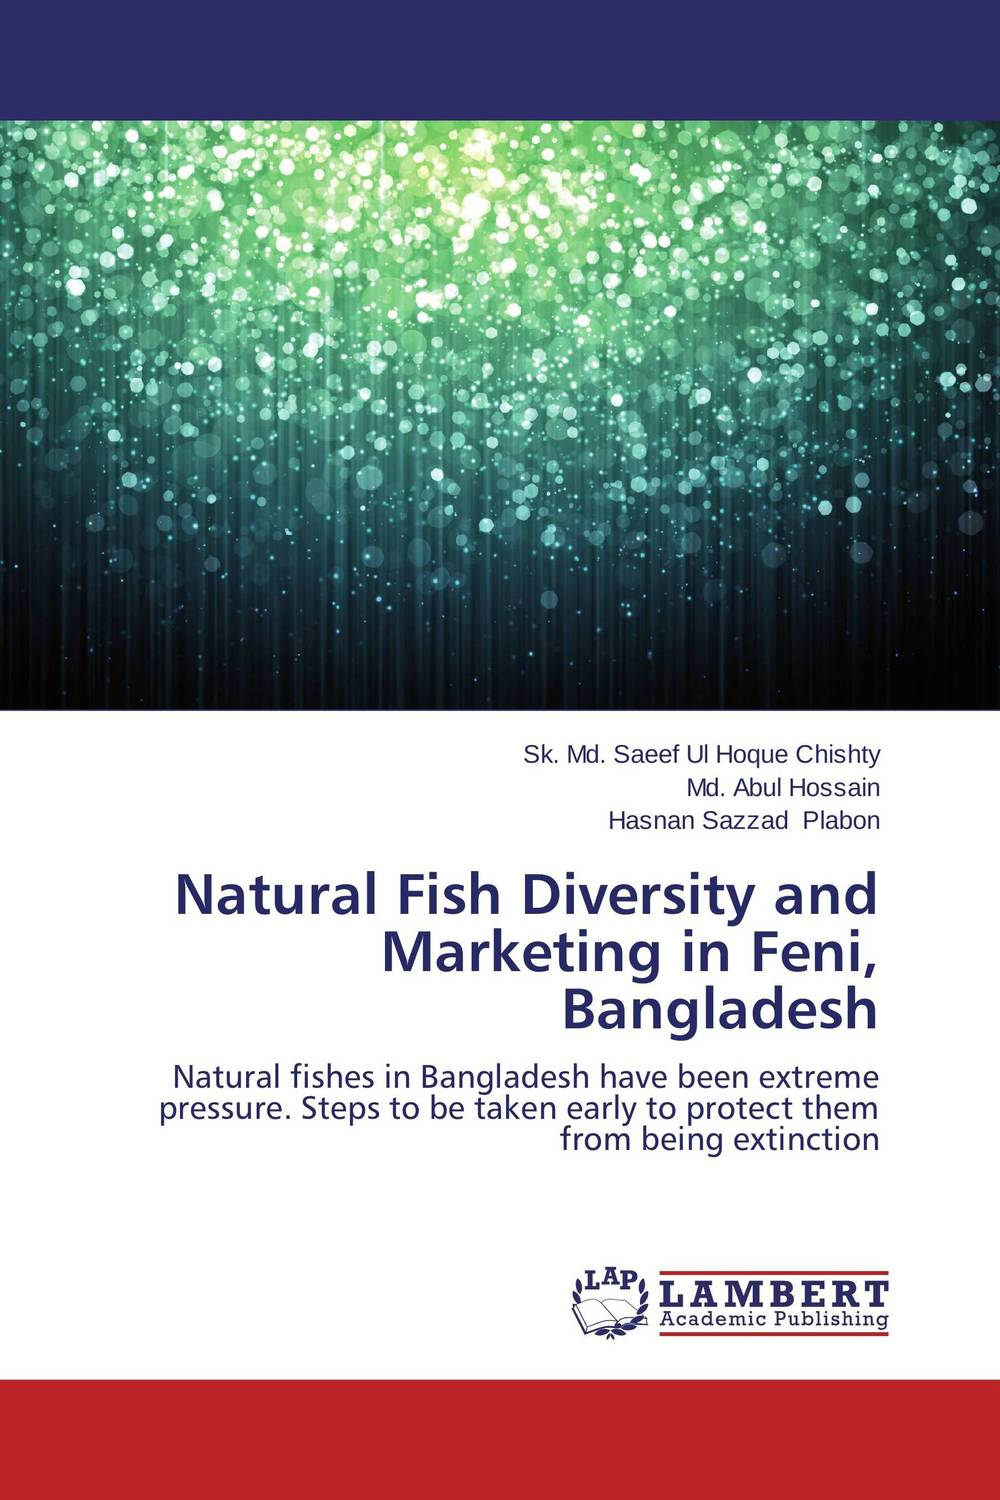 Natural Fish Diversity and Marketing in Feni, Bangladesh mohammad abdul momin siddique and svein ottar olsen dry fish consumption in bangladesh